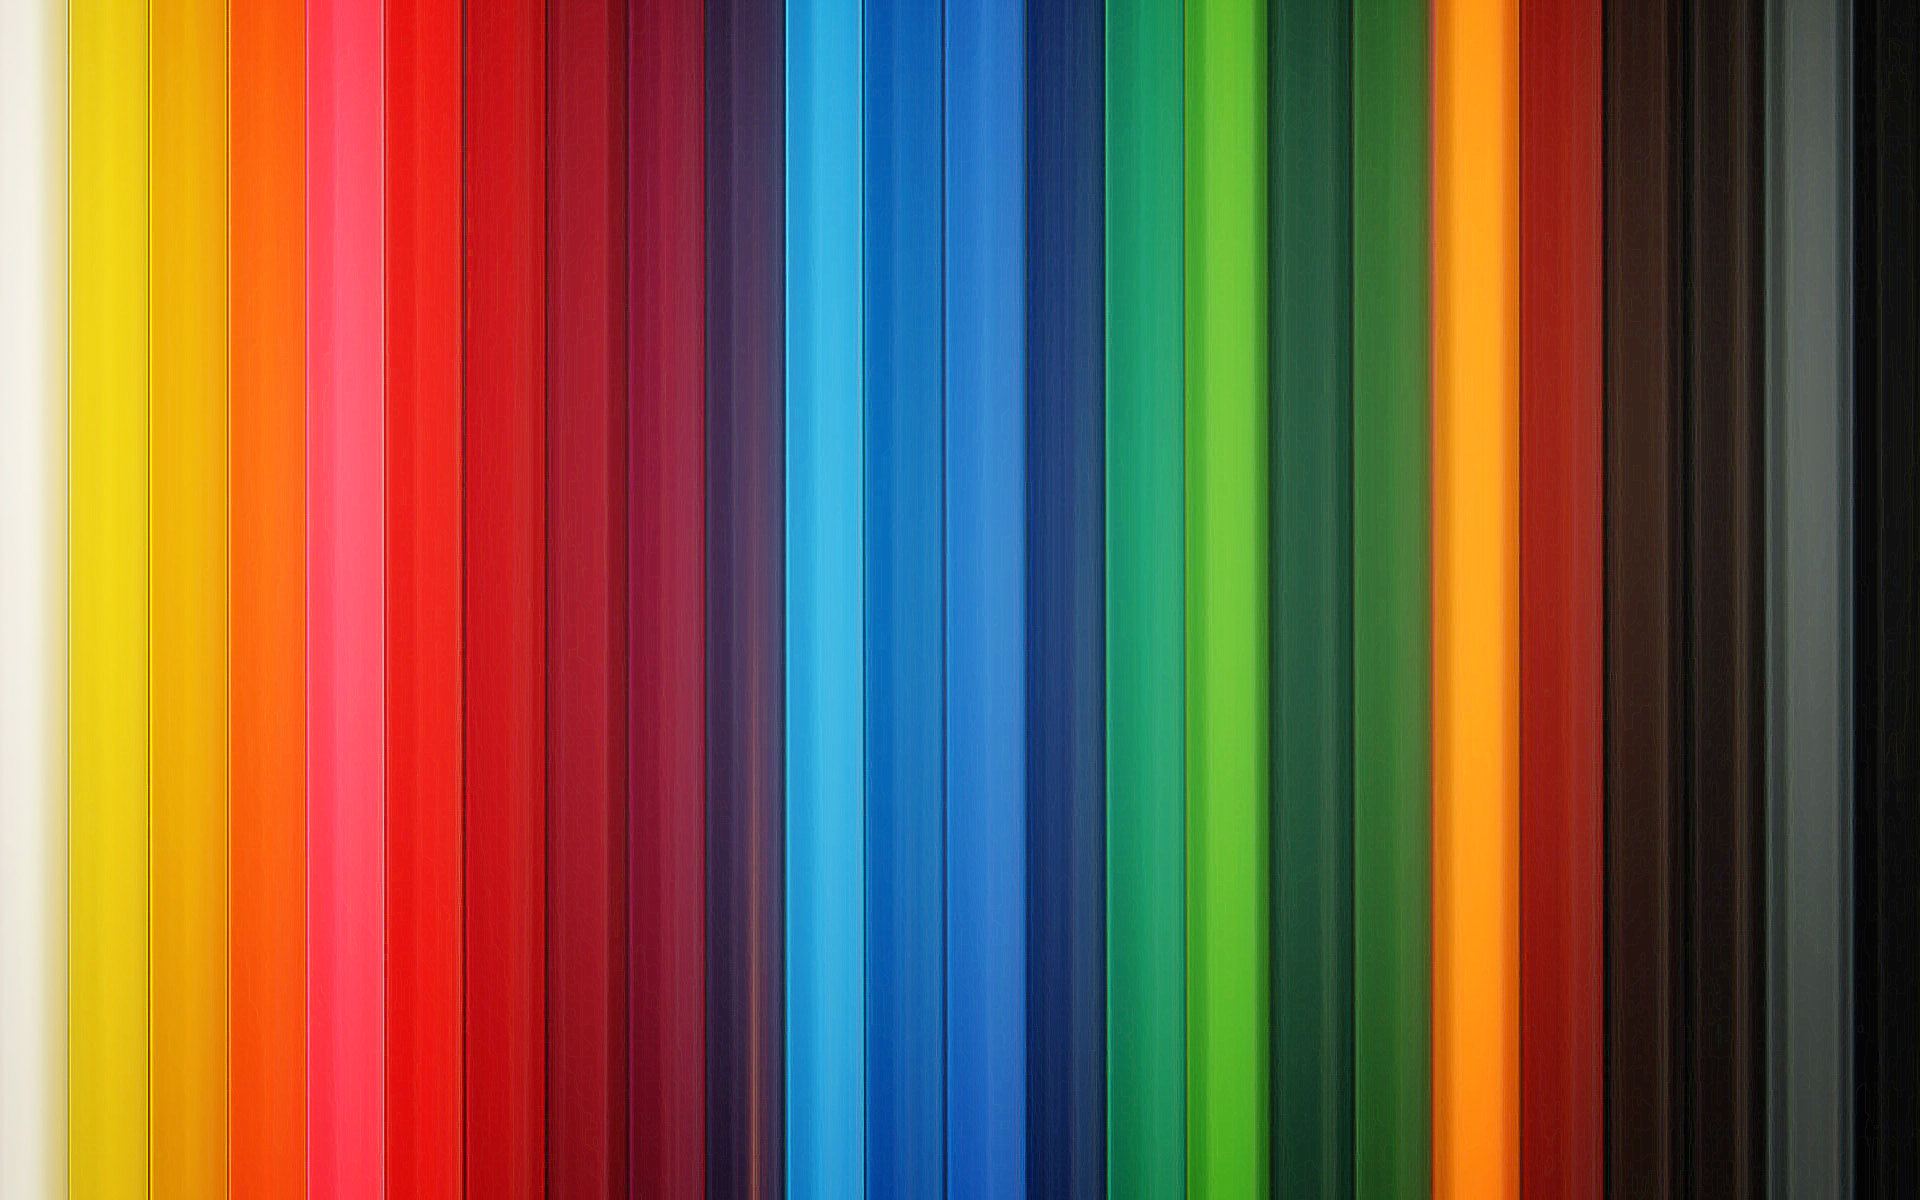 Colorful Pencils Wallpapers HD Wallpapers 1920x1200